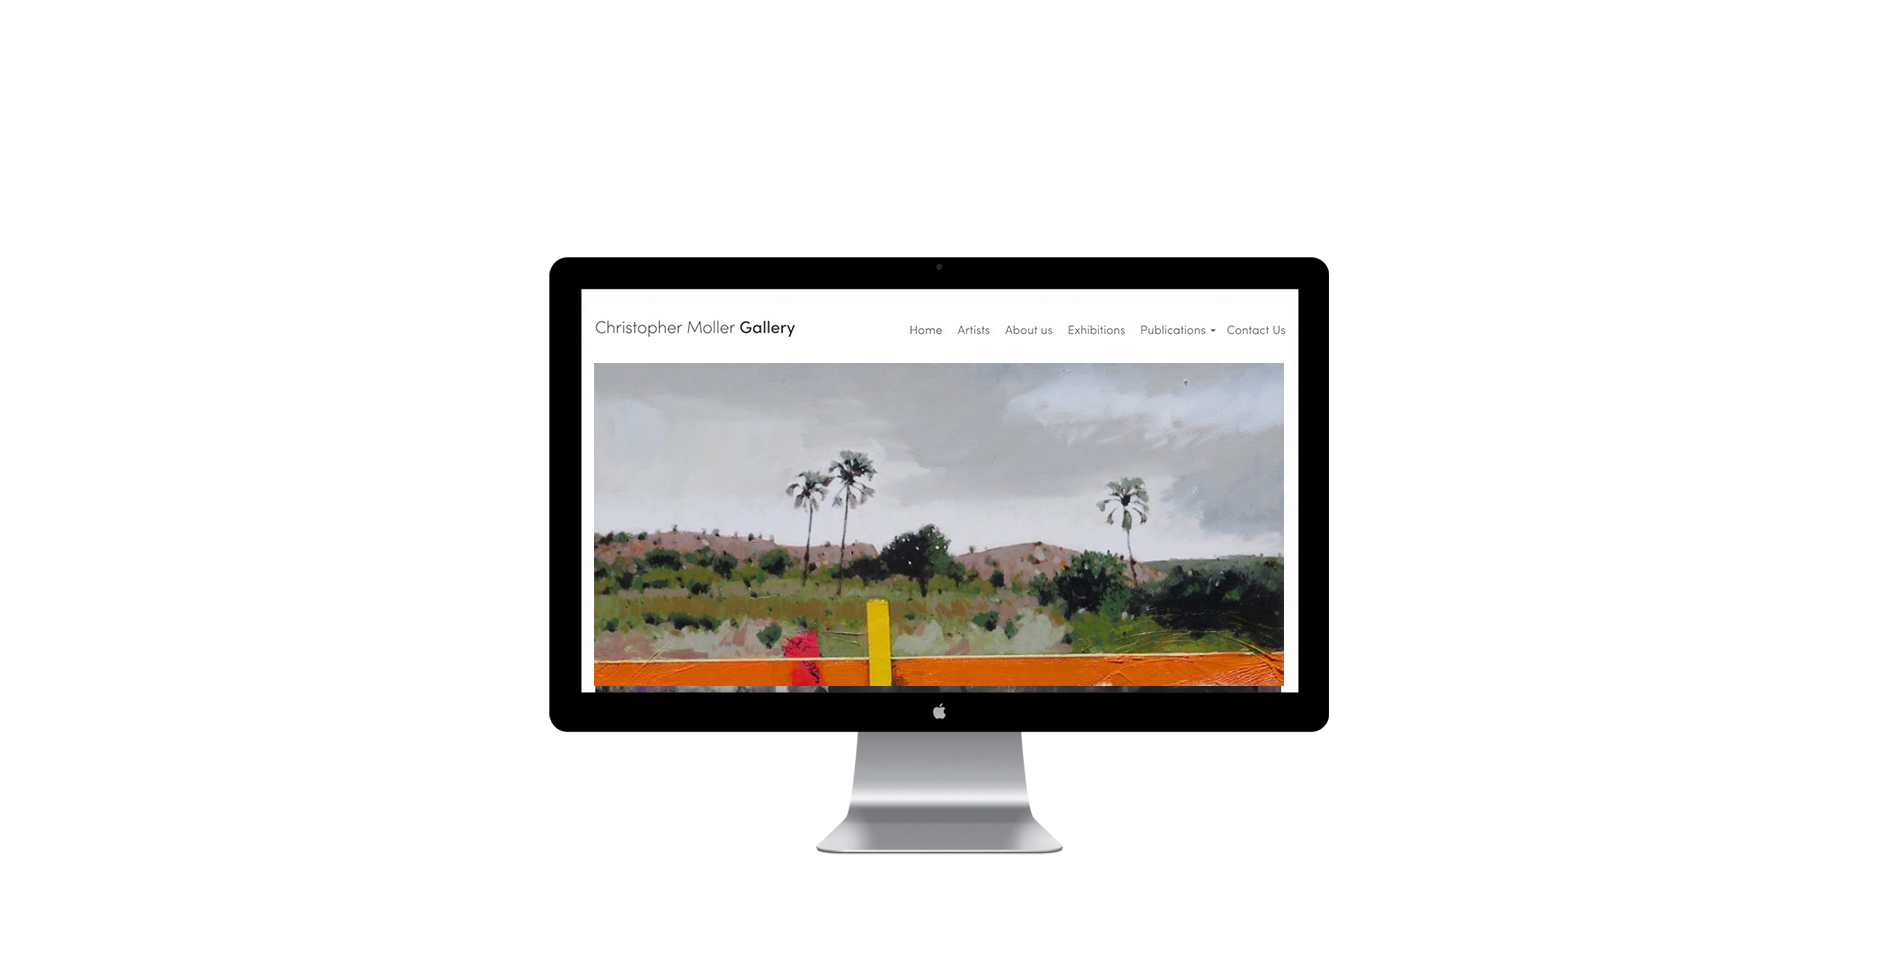 website design art gallery minimalist freelance